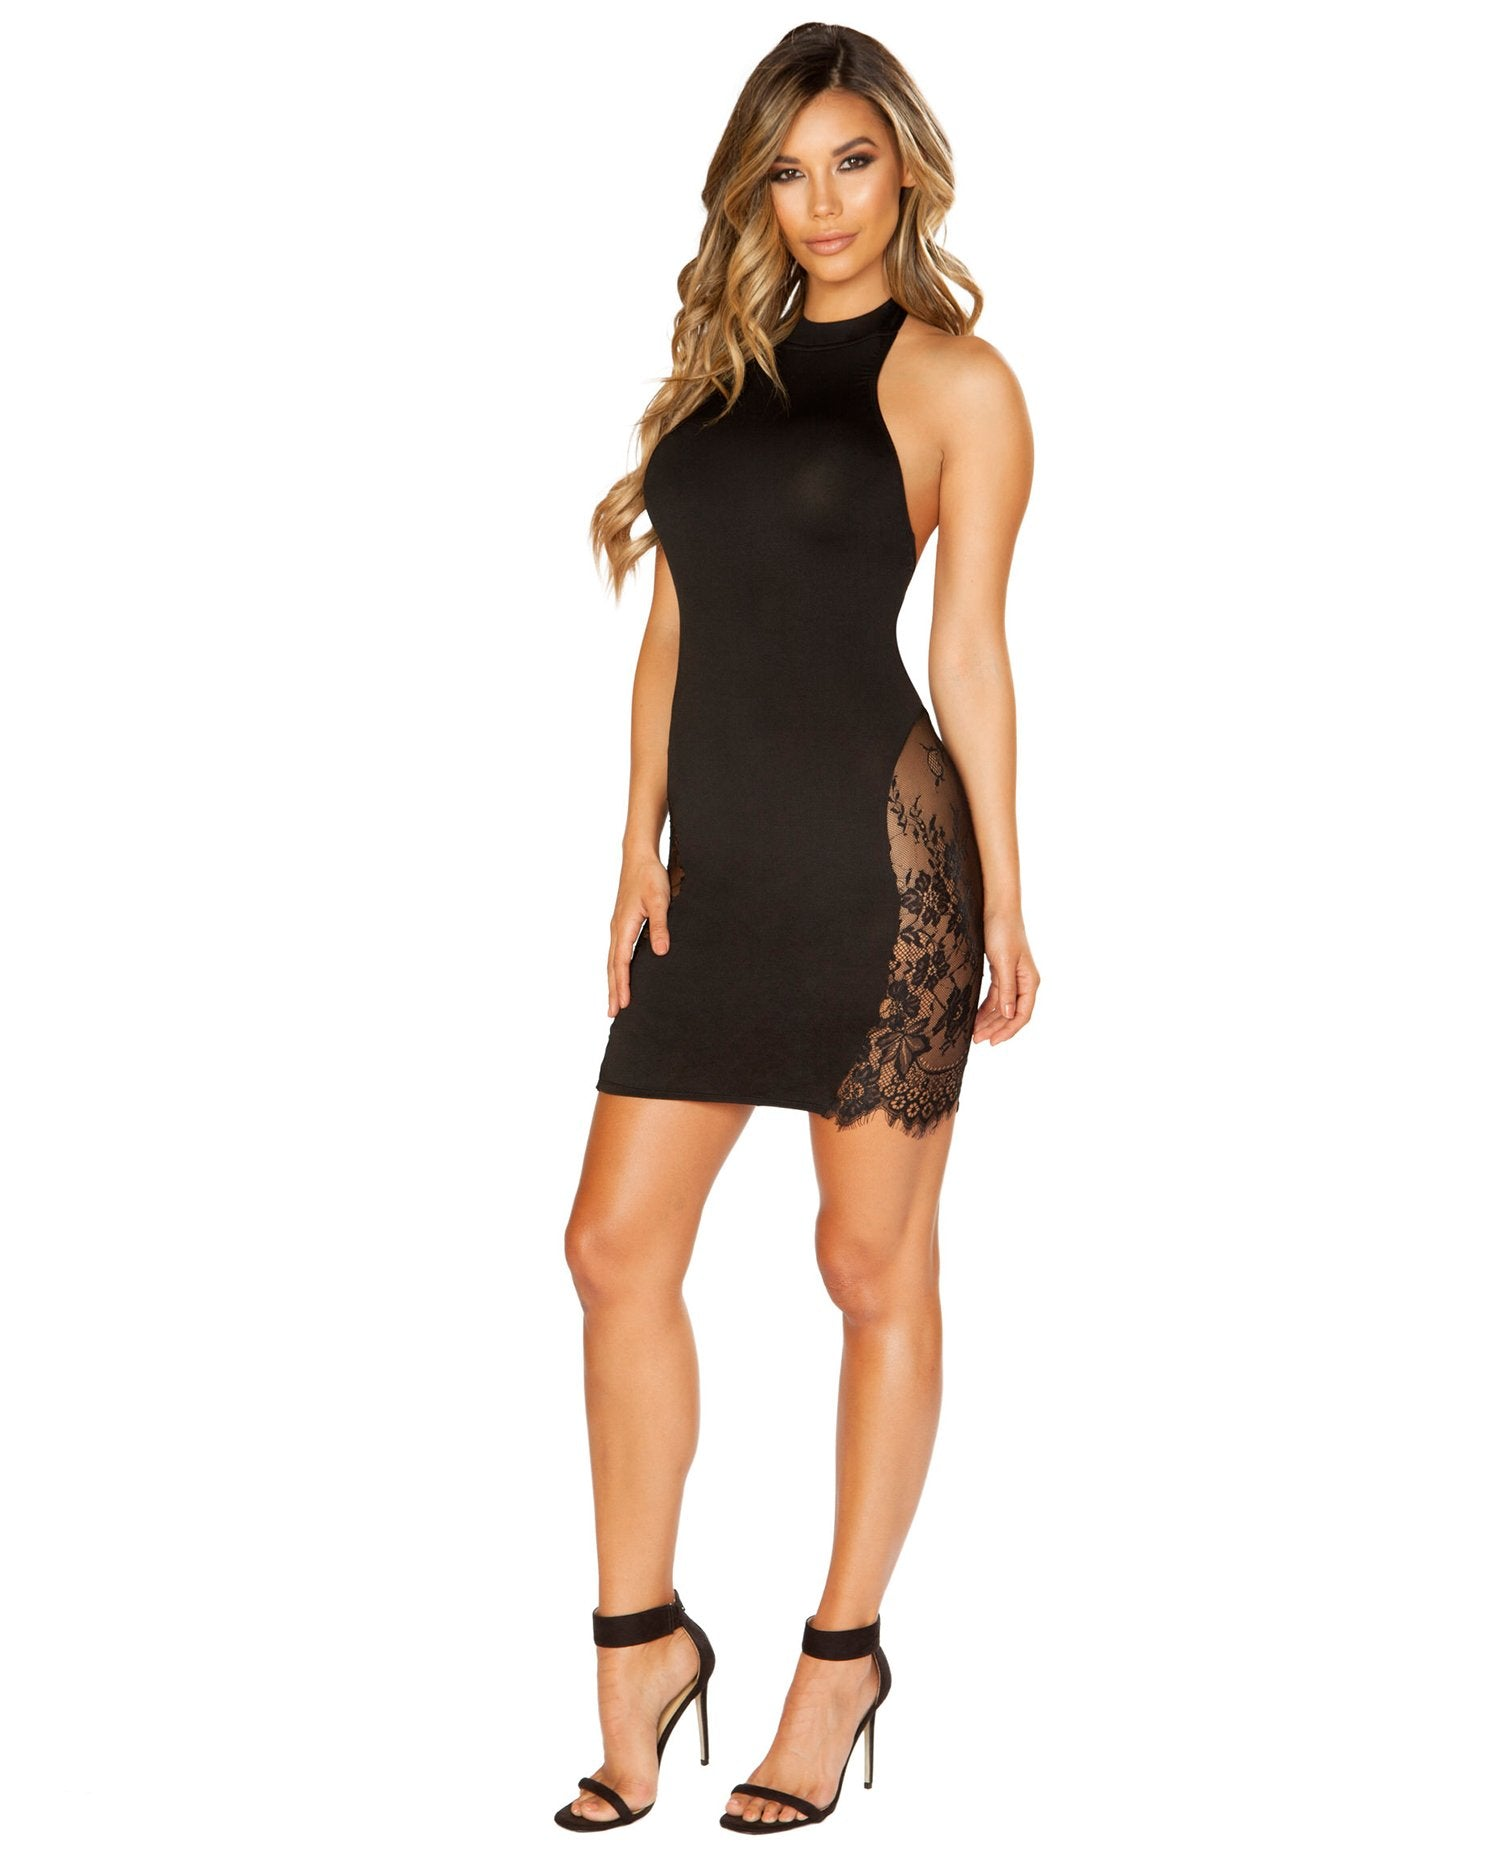 Halter Neck Dress with Eyelash Lace Panels-club wear-Roma Costume-black-small-Nakees